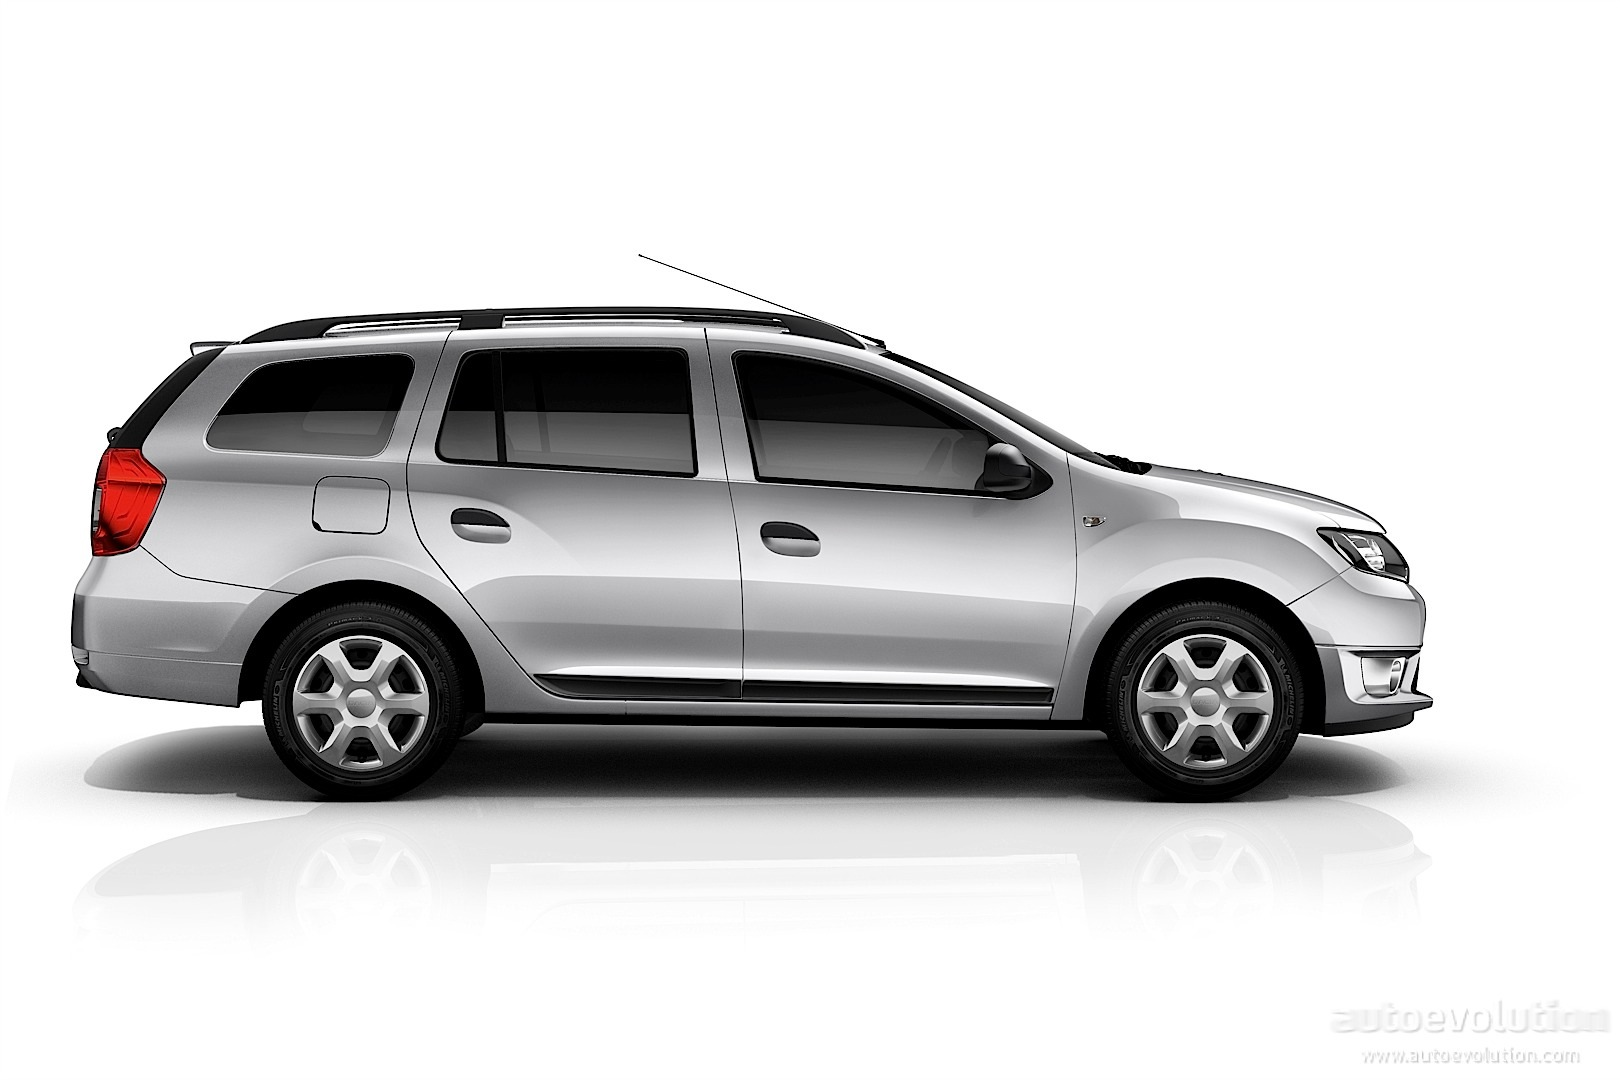 Pictures of dacia logan #12